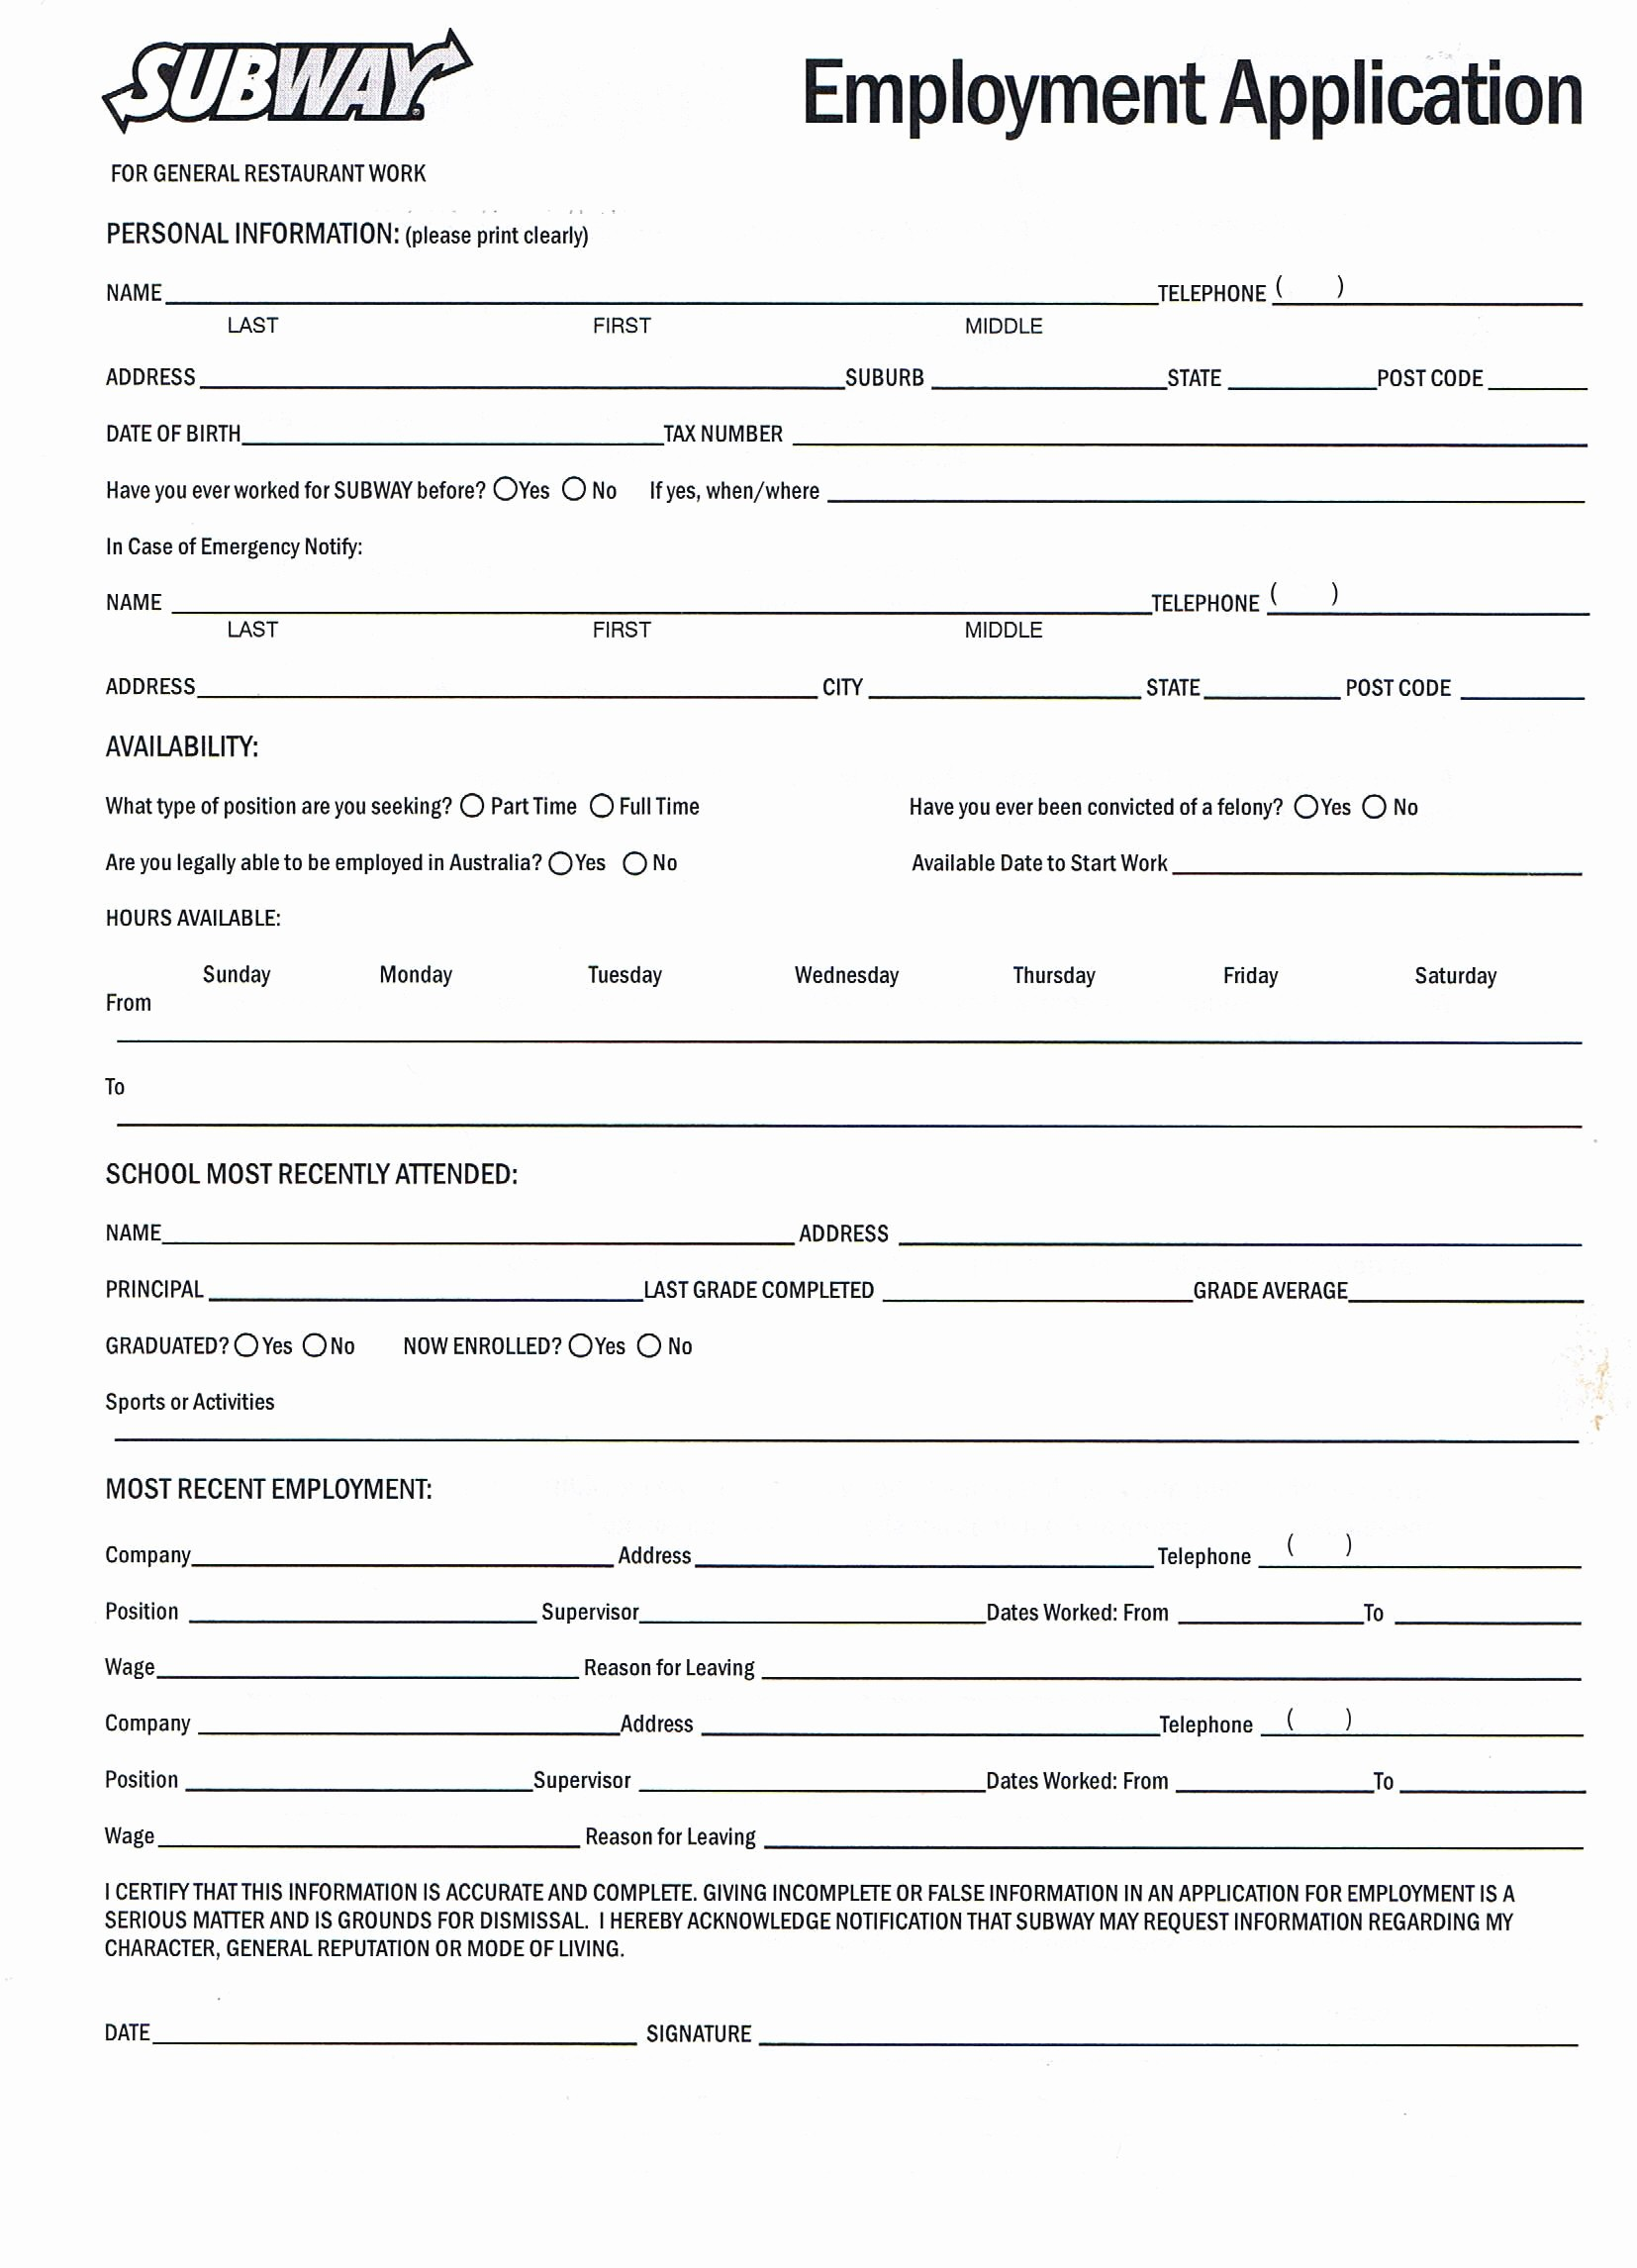 General Application for Employment Printable Luxury Printable Employment Application for Subway